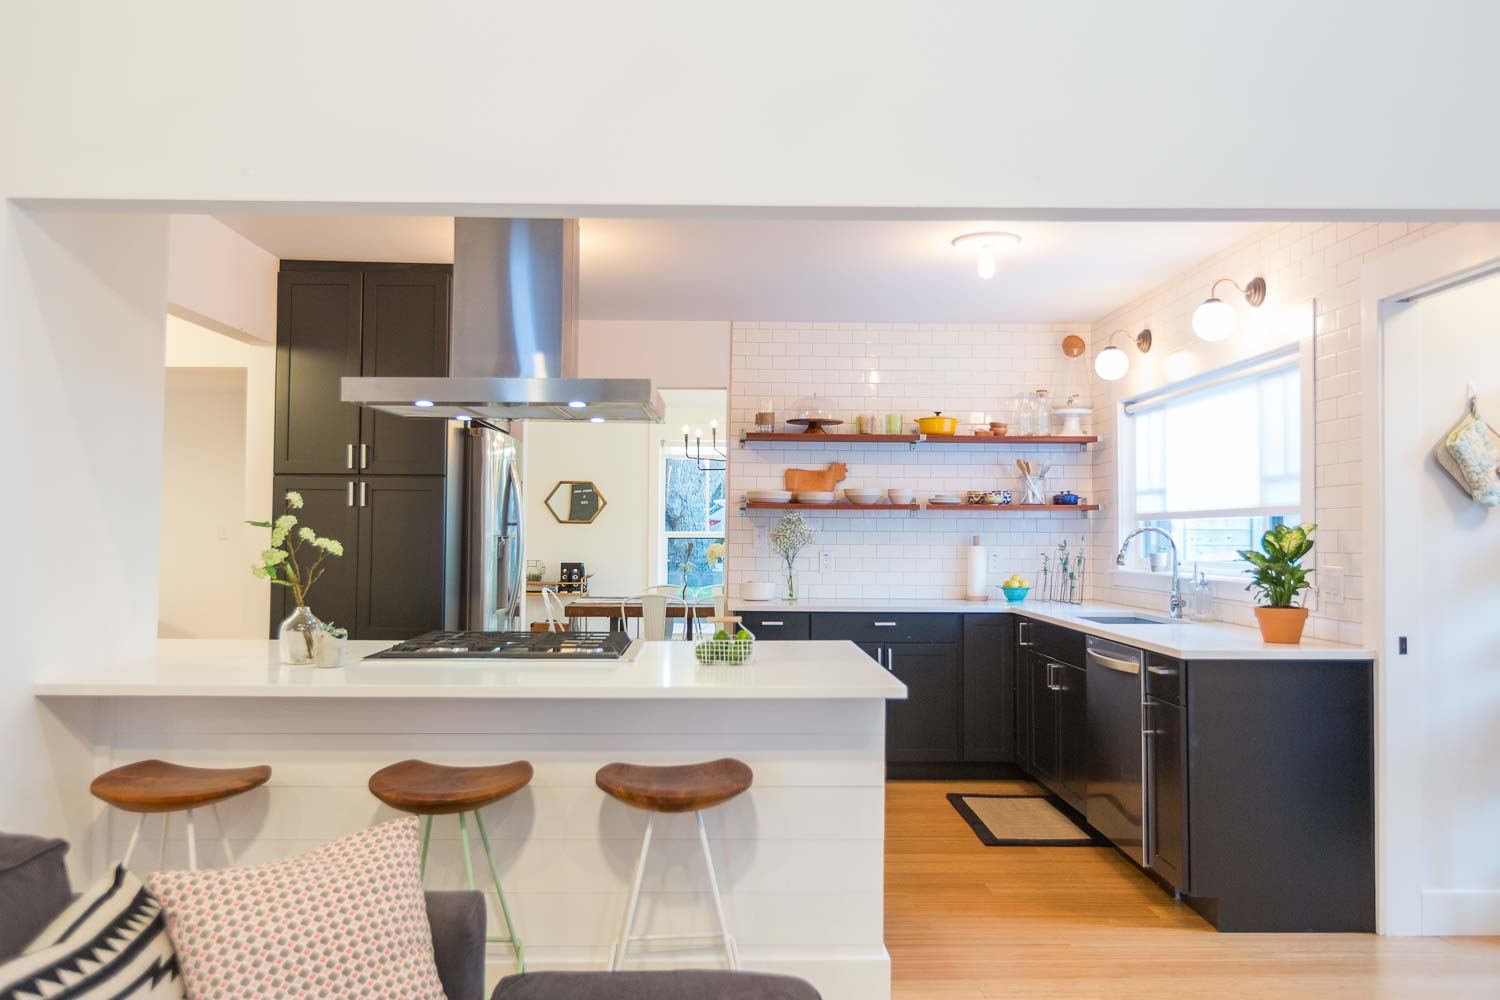 Who wouldn't love this awesome kitchen Making Modern Home designed. At the center of the home, we had to be strategic with the layout. The black cabinets and white quartz countertops, combine nicely with the wood floating shelves and wood barstools.